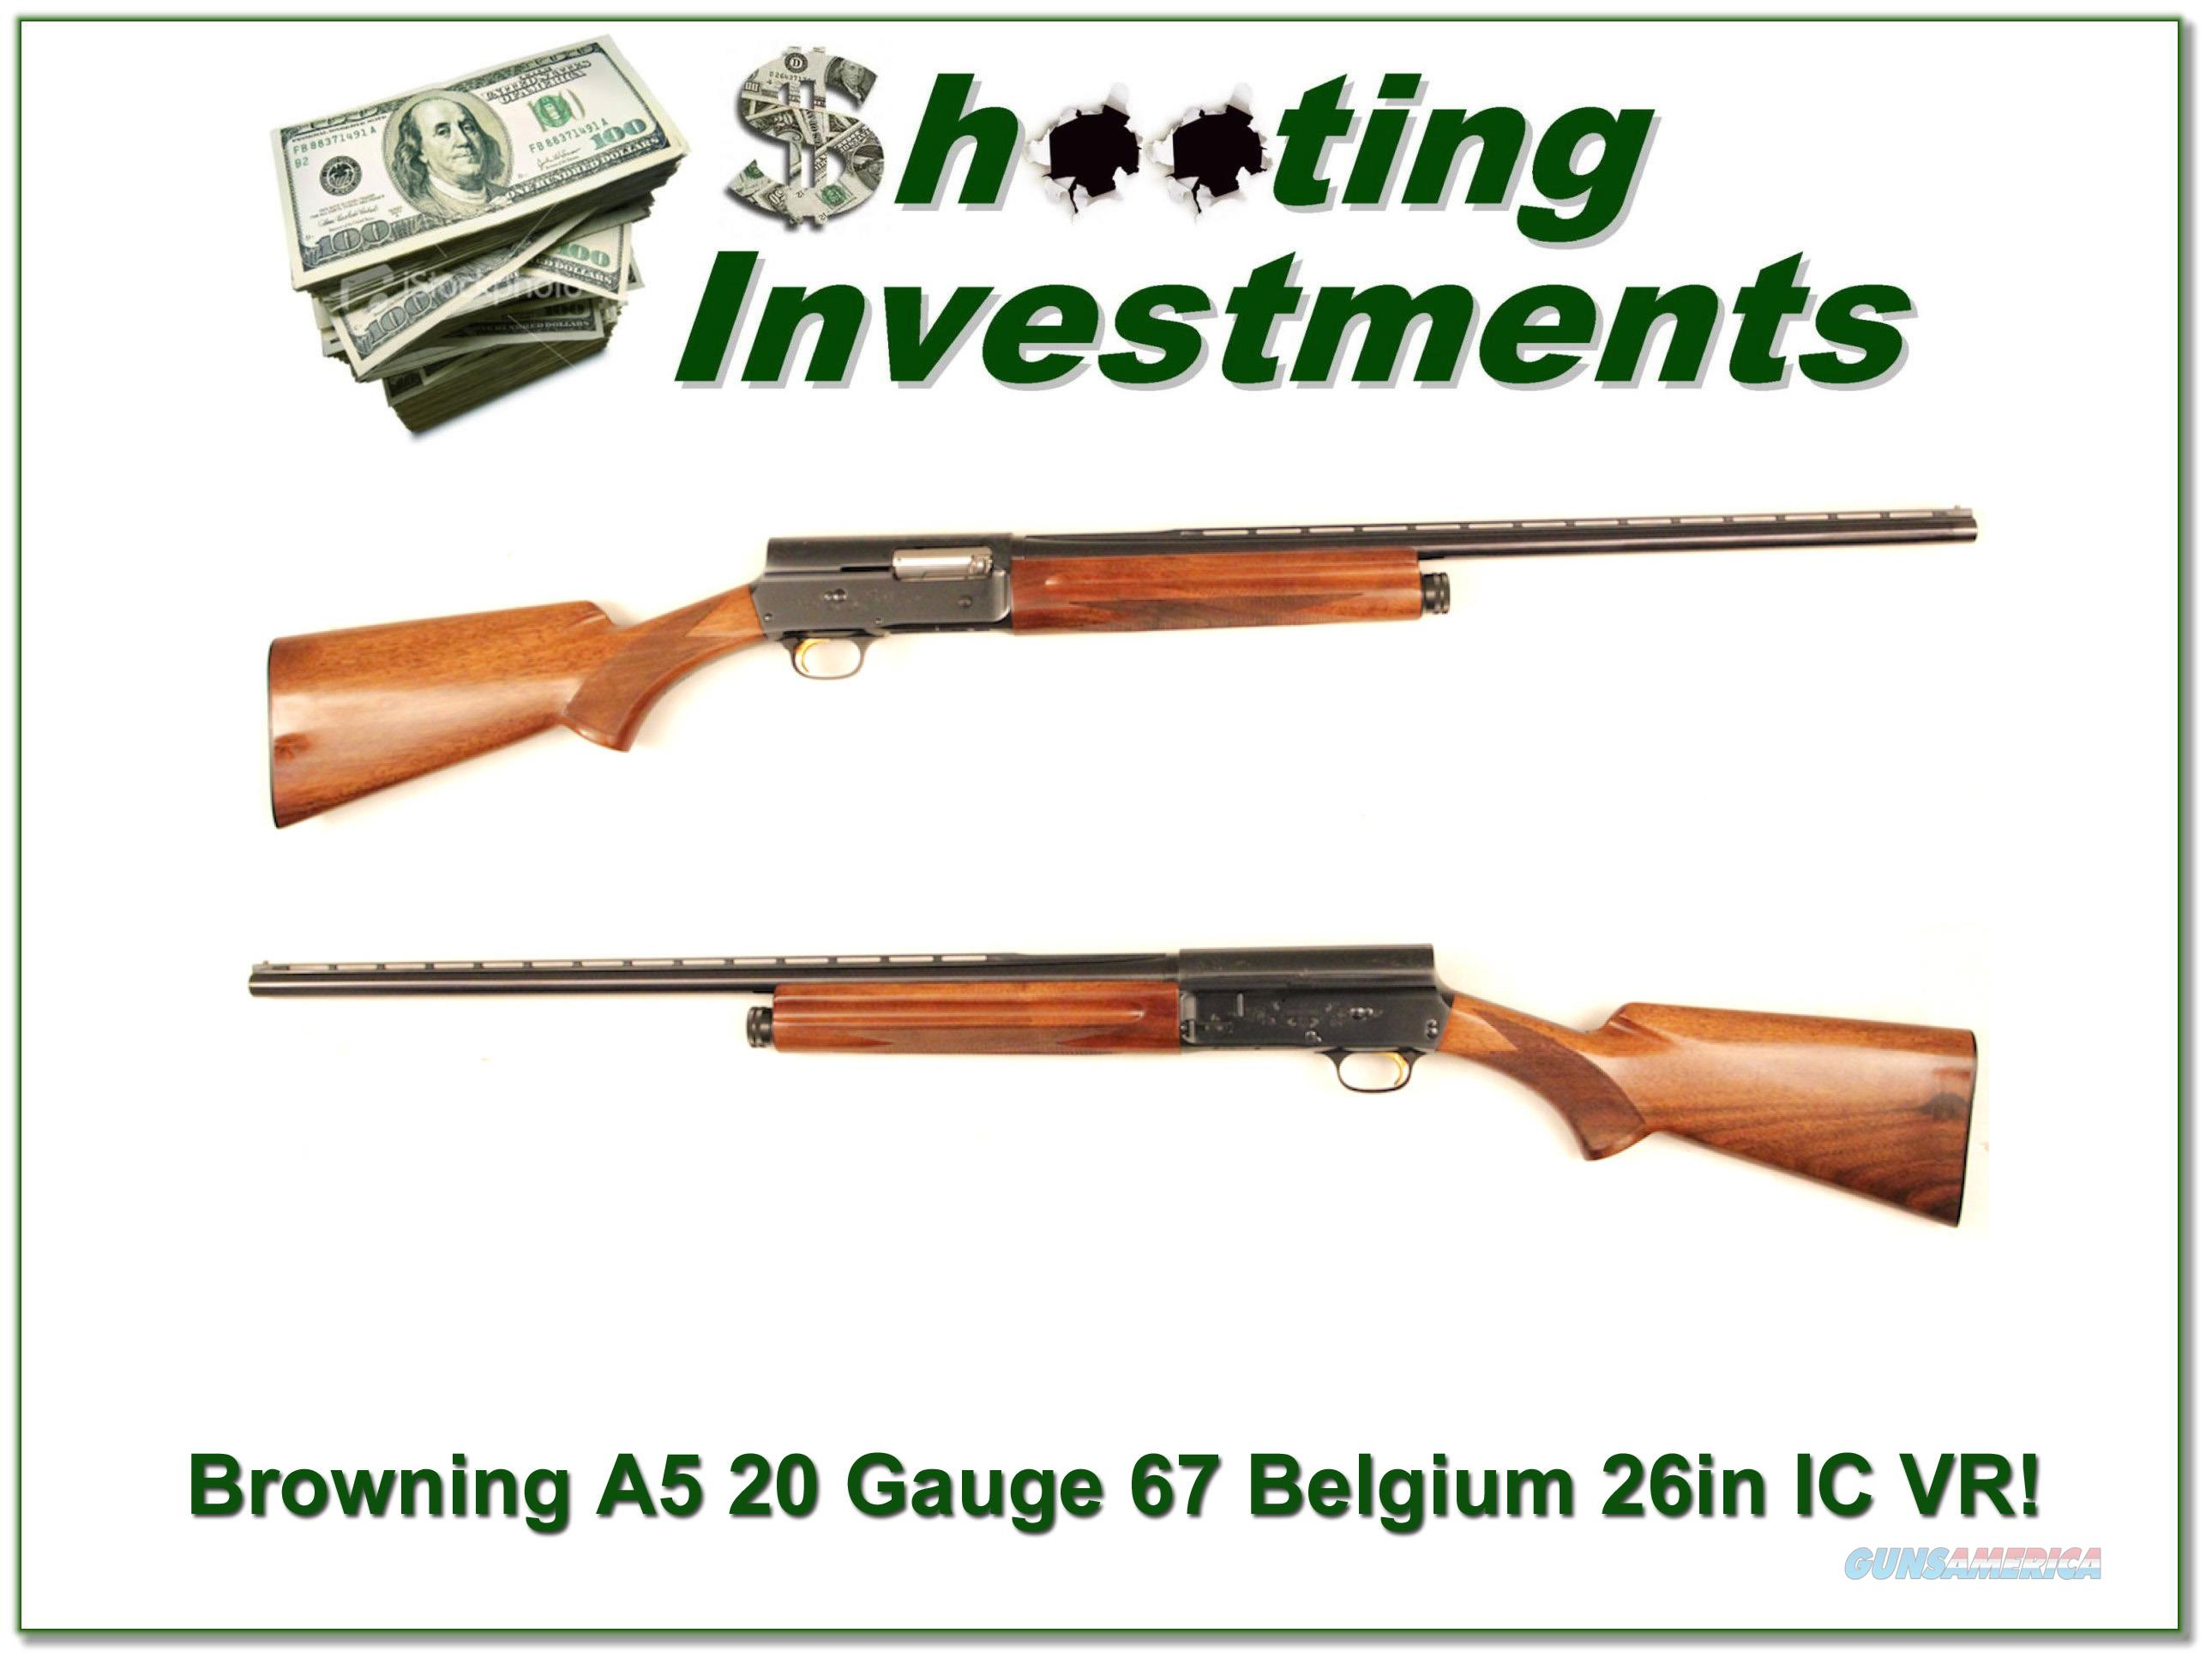 Browning A5 20 Gauge 67 Belgium VR 26in IC Exc Cond!  Guns > Shotguns > Browning Shotguns > Autoloaders > Hunting